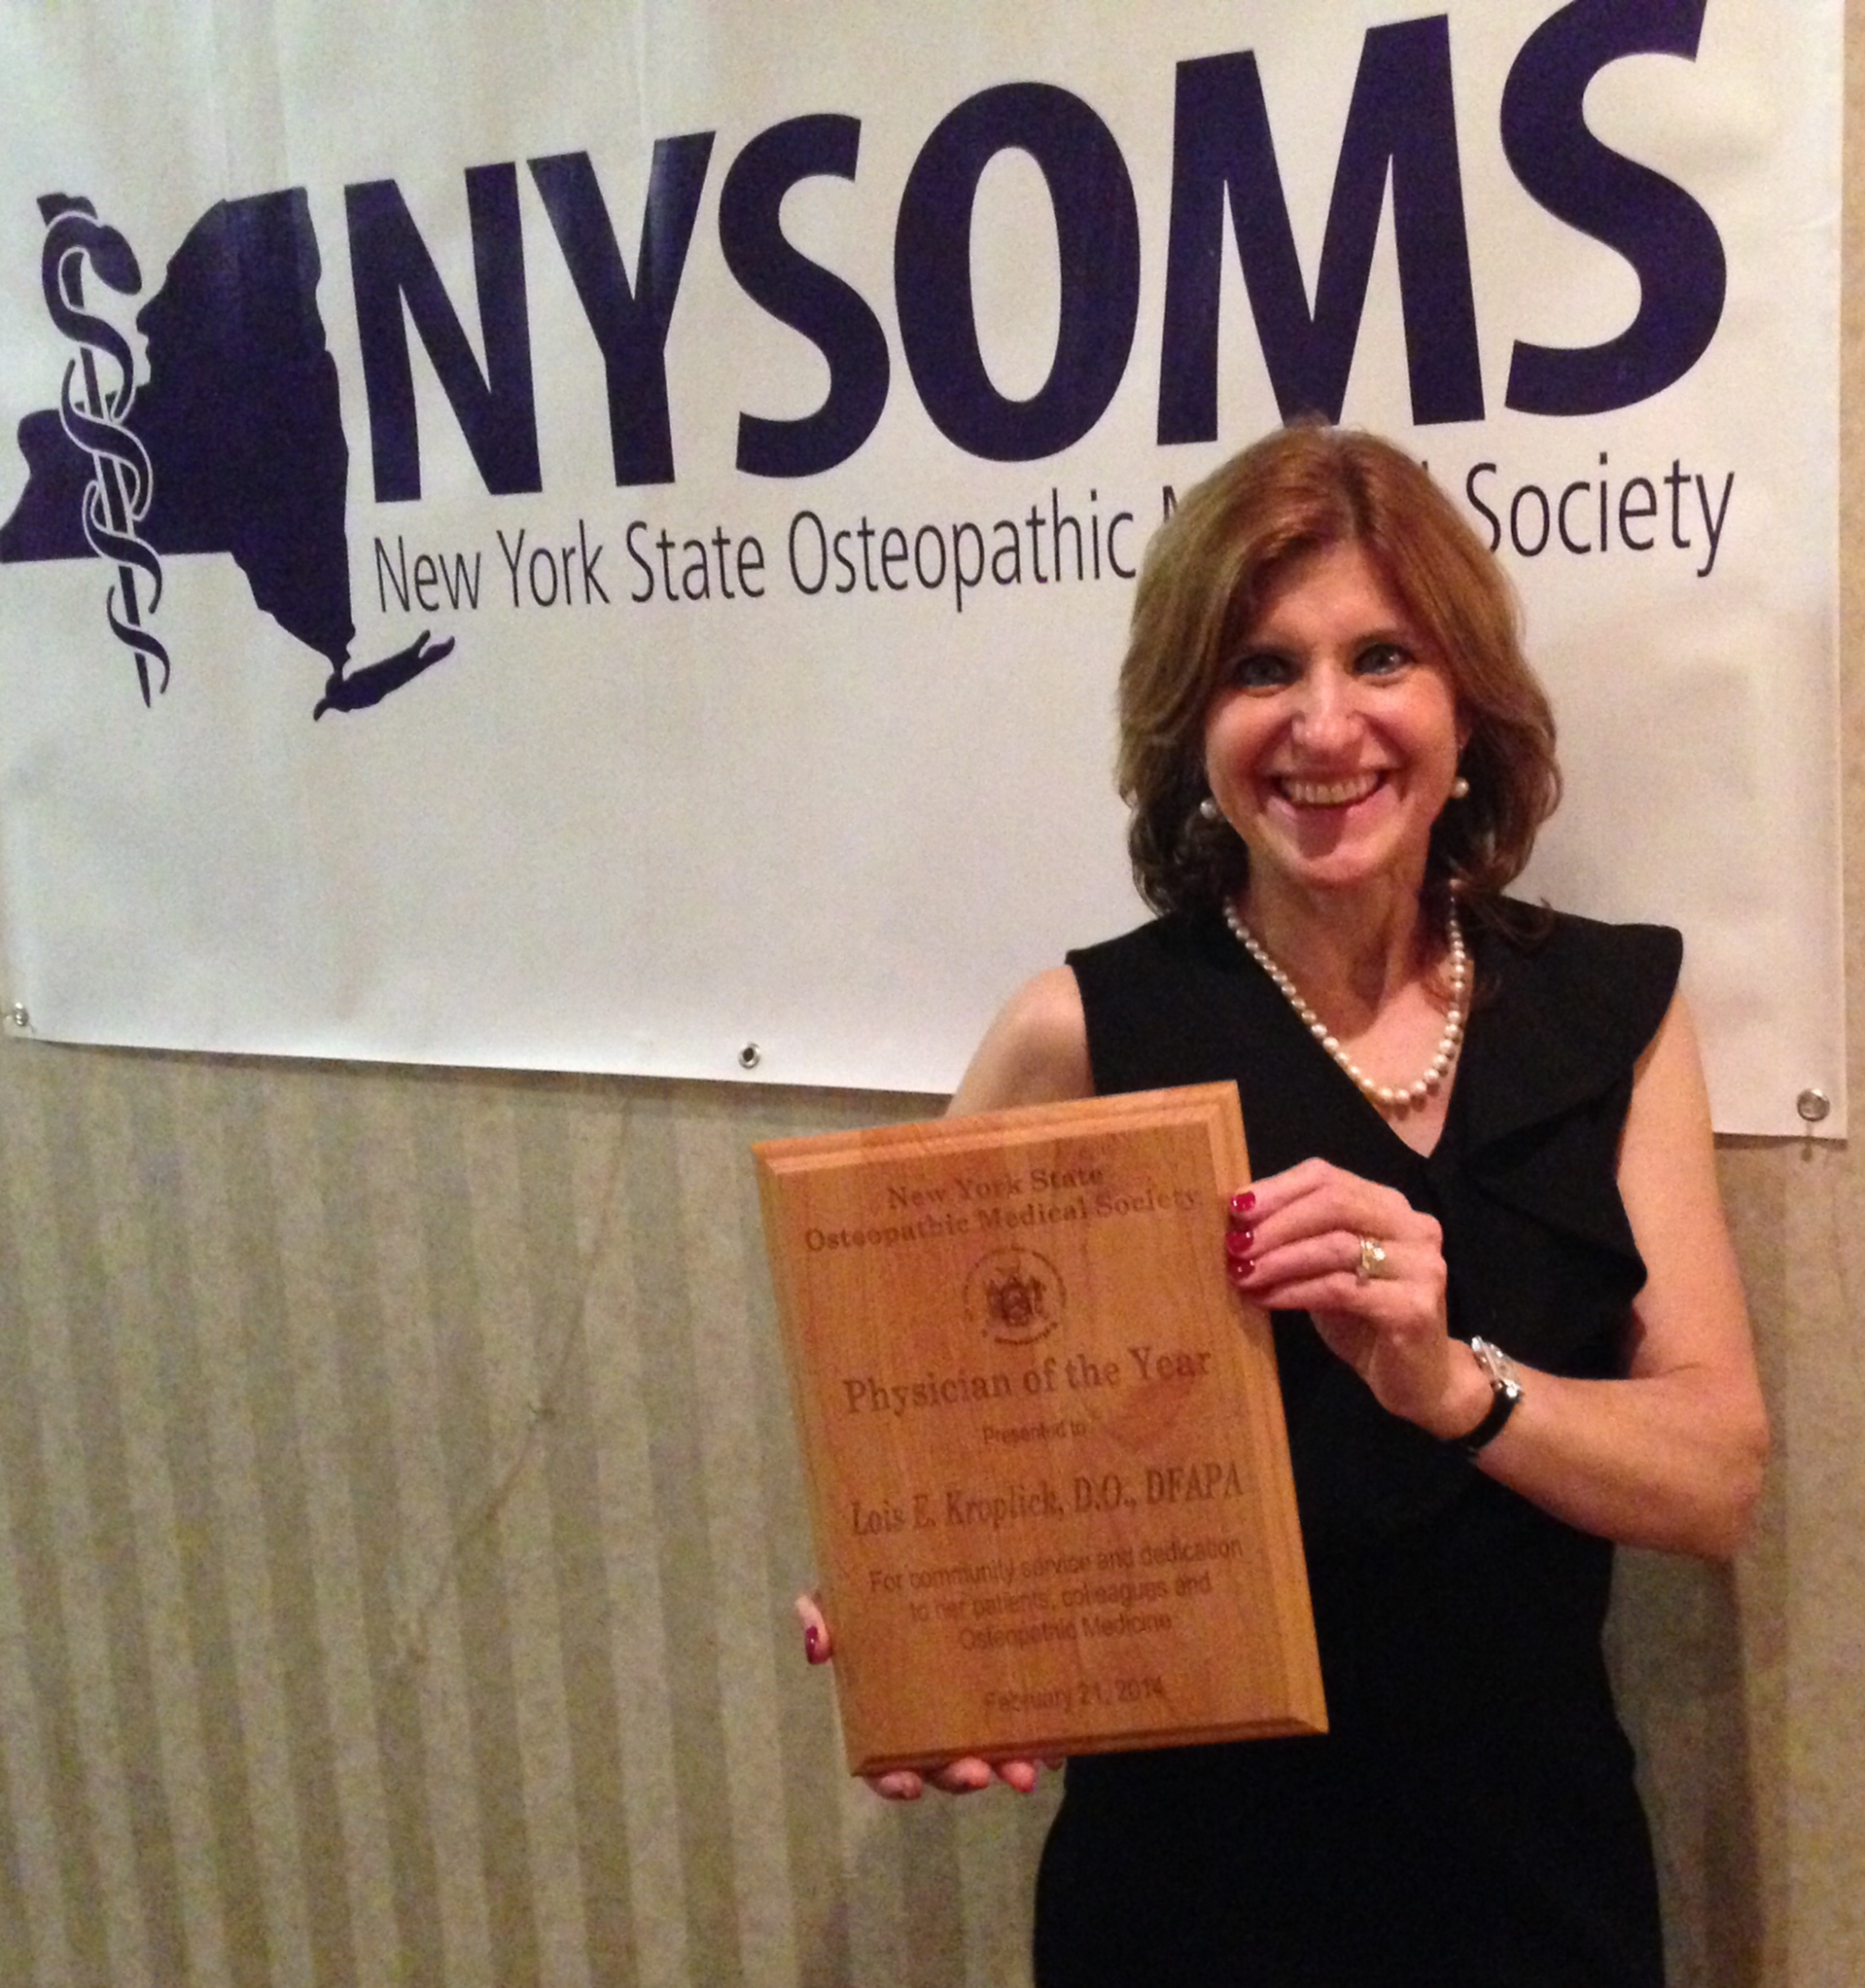 dr kroplick named nysoms physician of the year lois kroplick receiving award